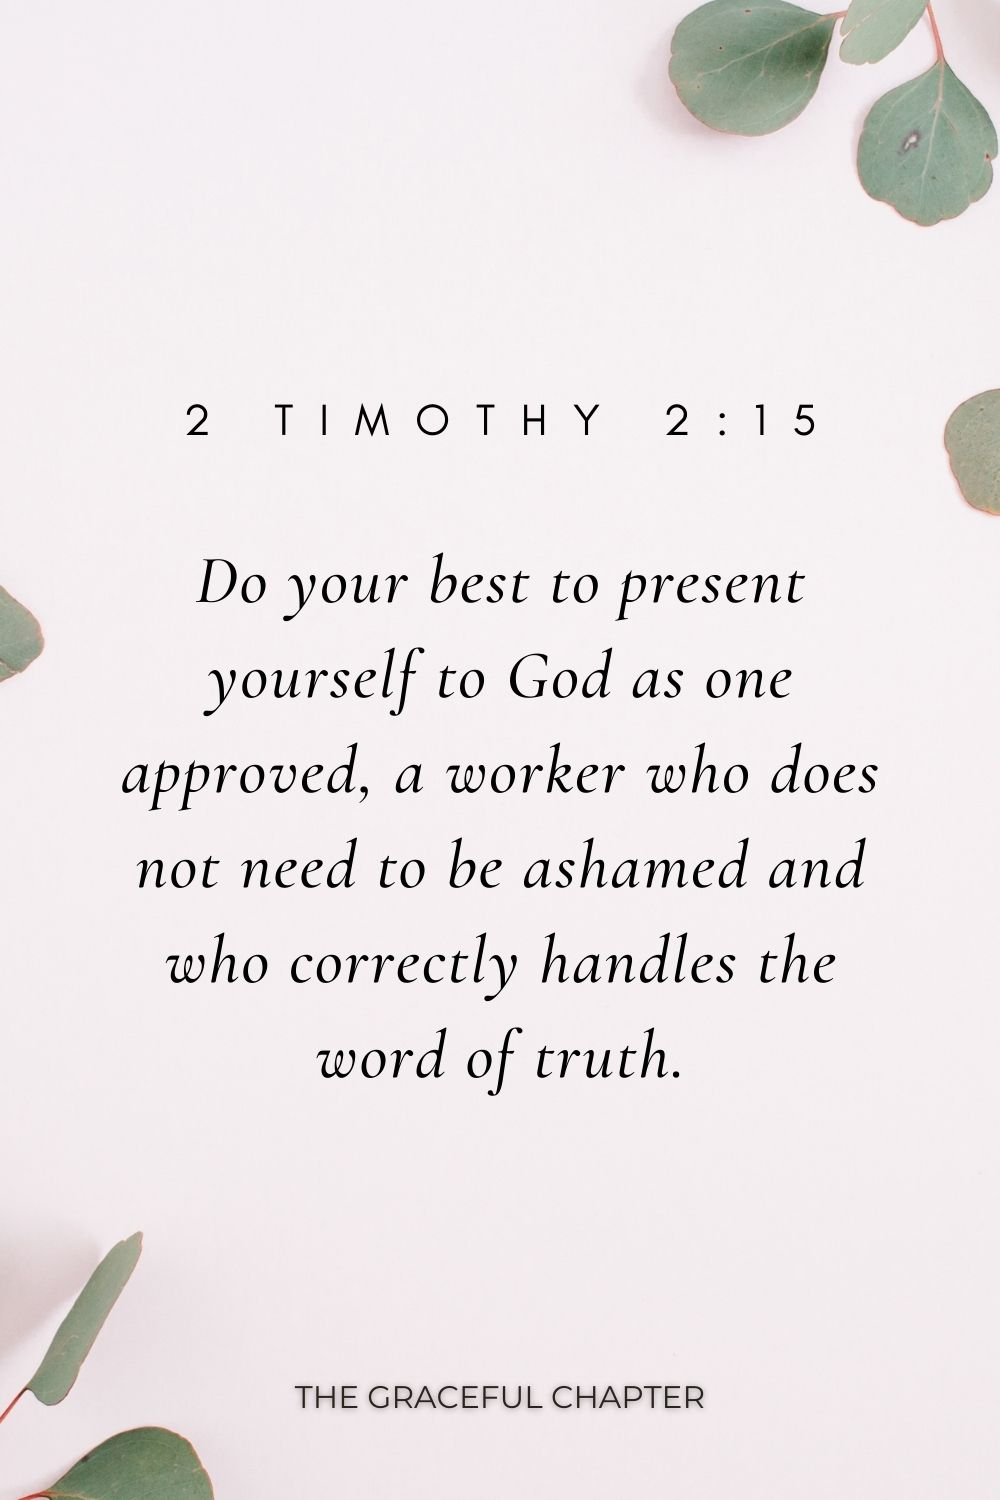 Do your best to present yourself to God as one approved, a worker who does not need to be ashamed and who correctly handles the word of truth. 2 Timothy 2:15